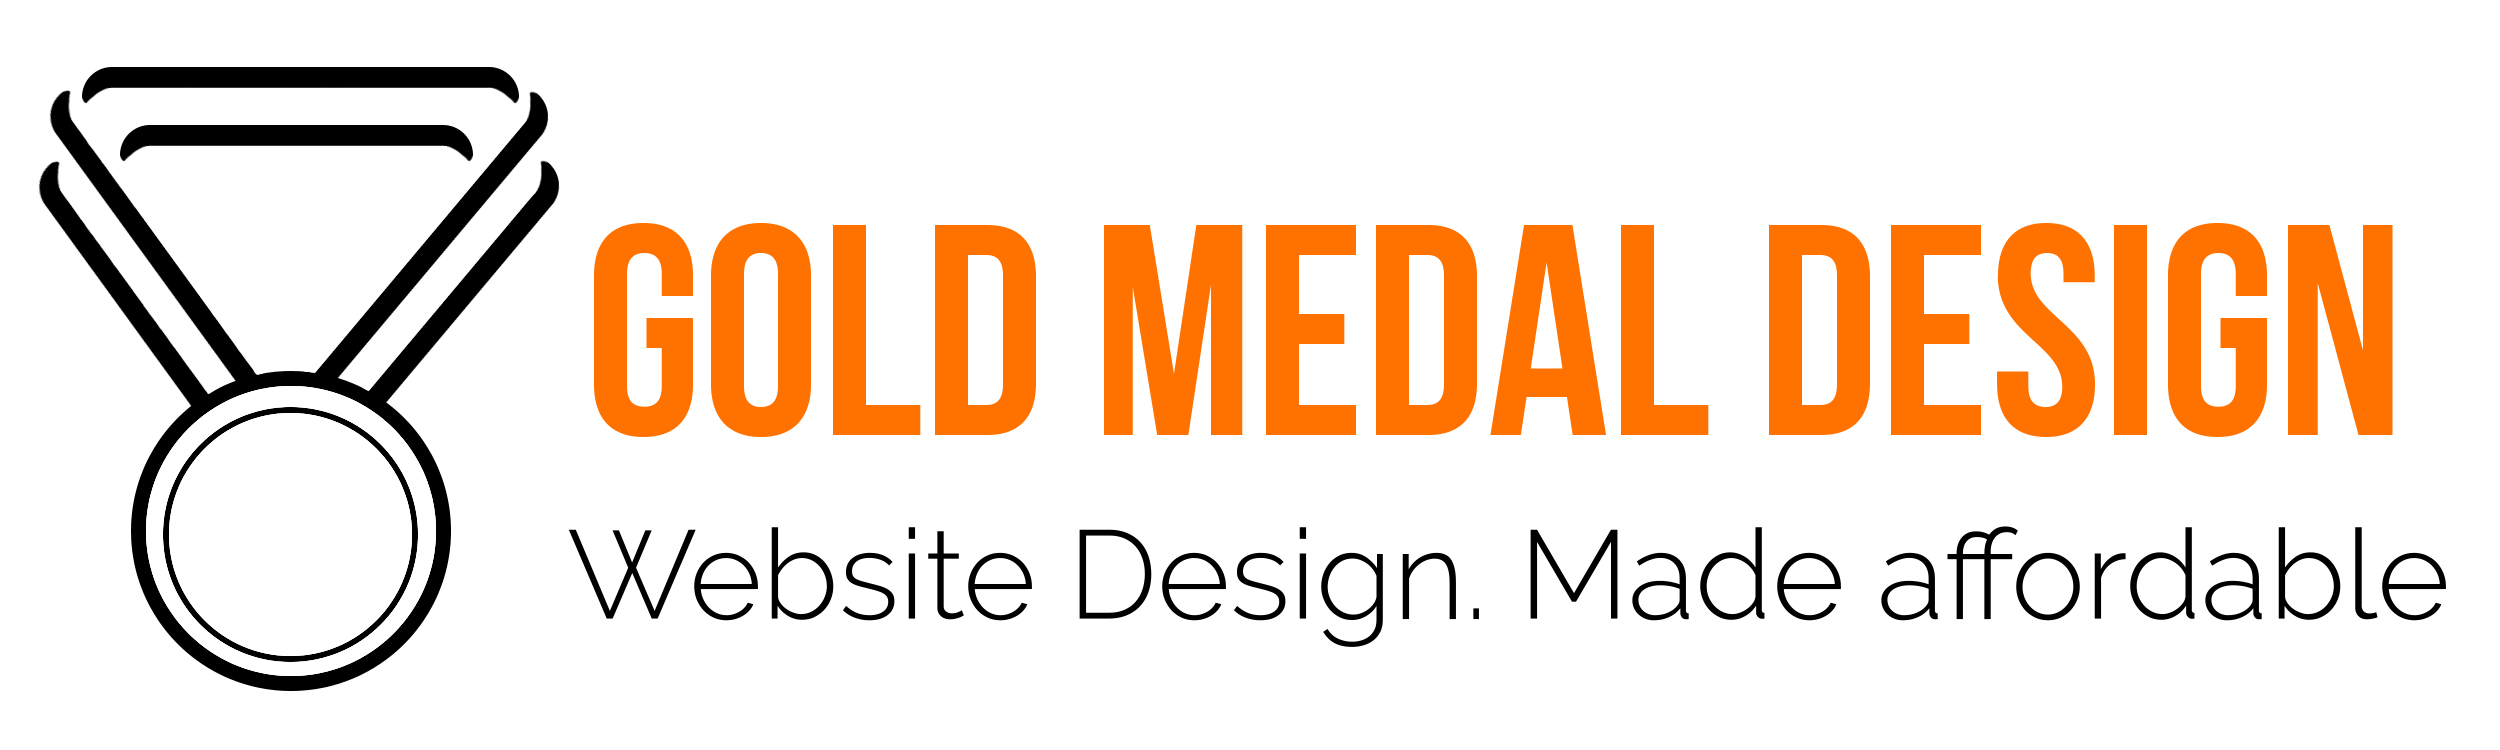 Gold Medal Design Logo with Tagline